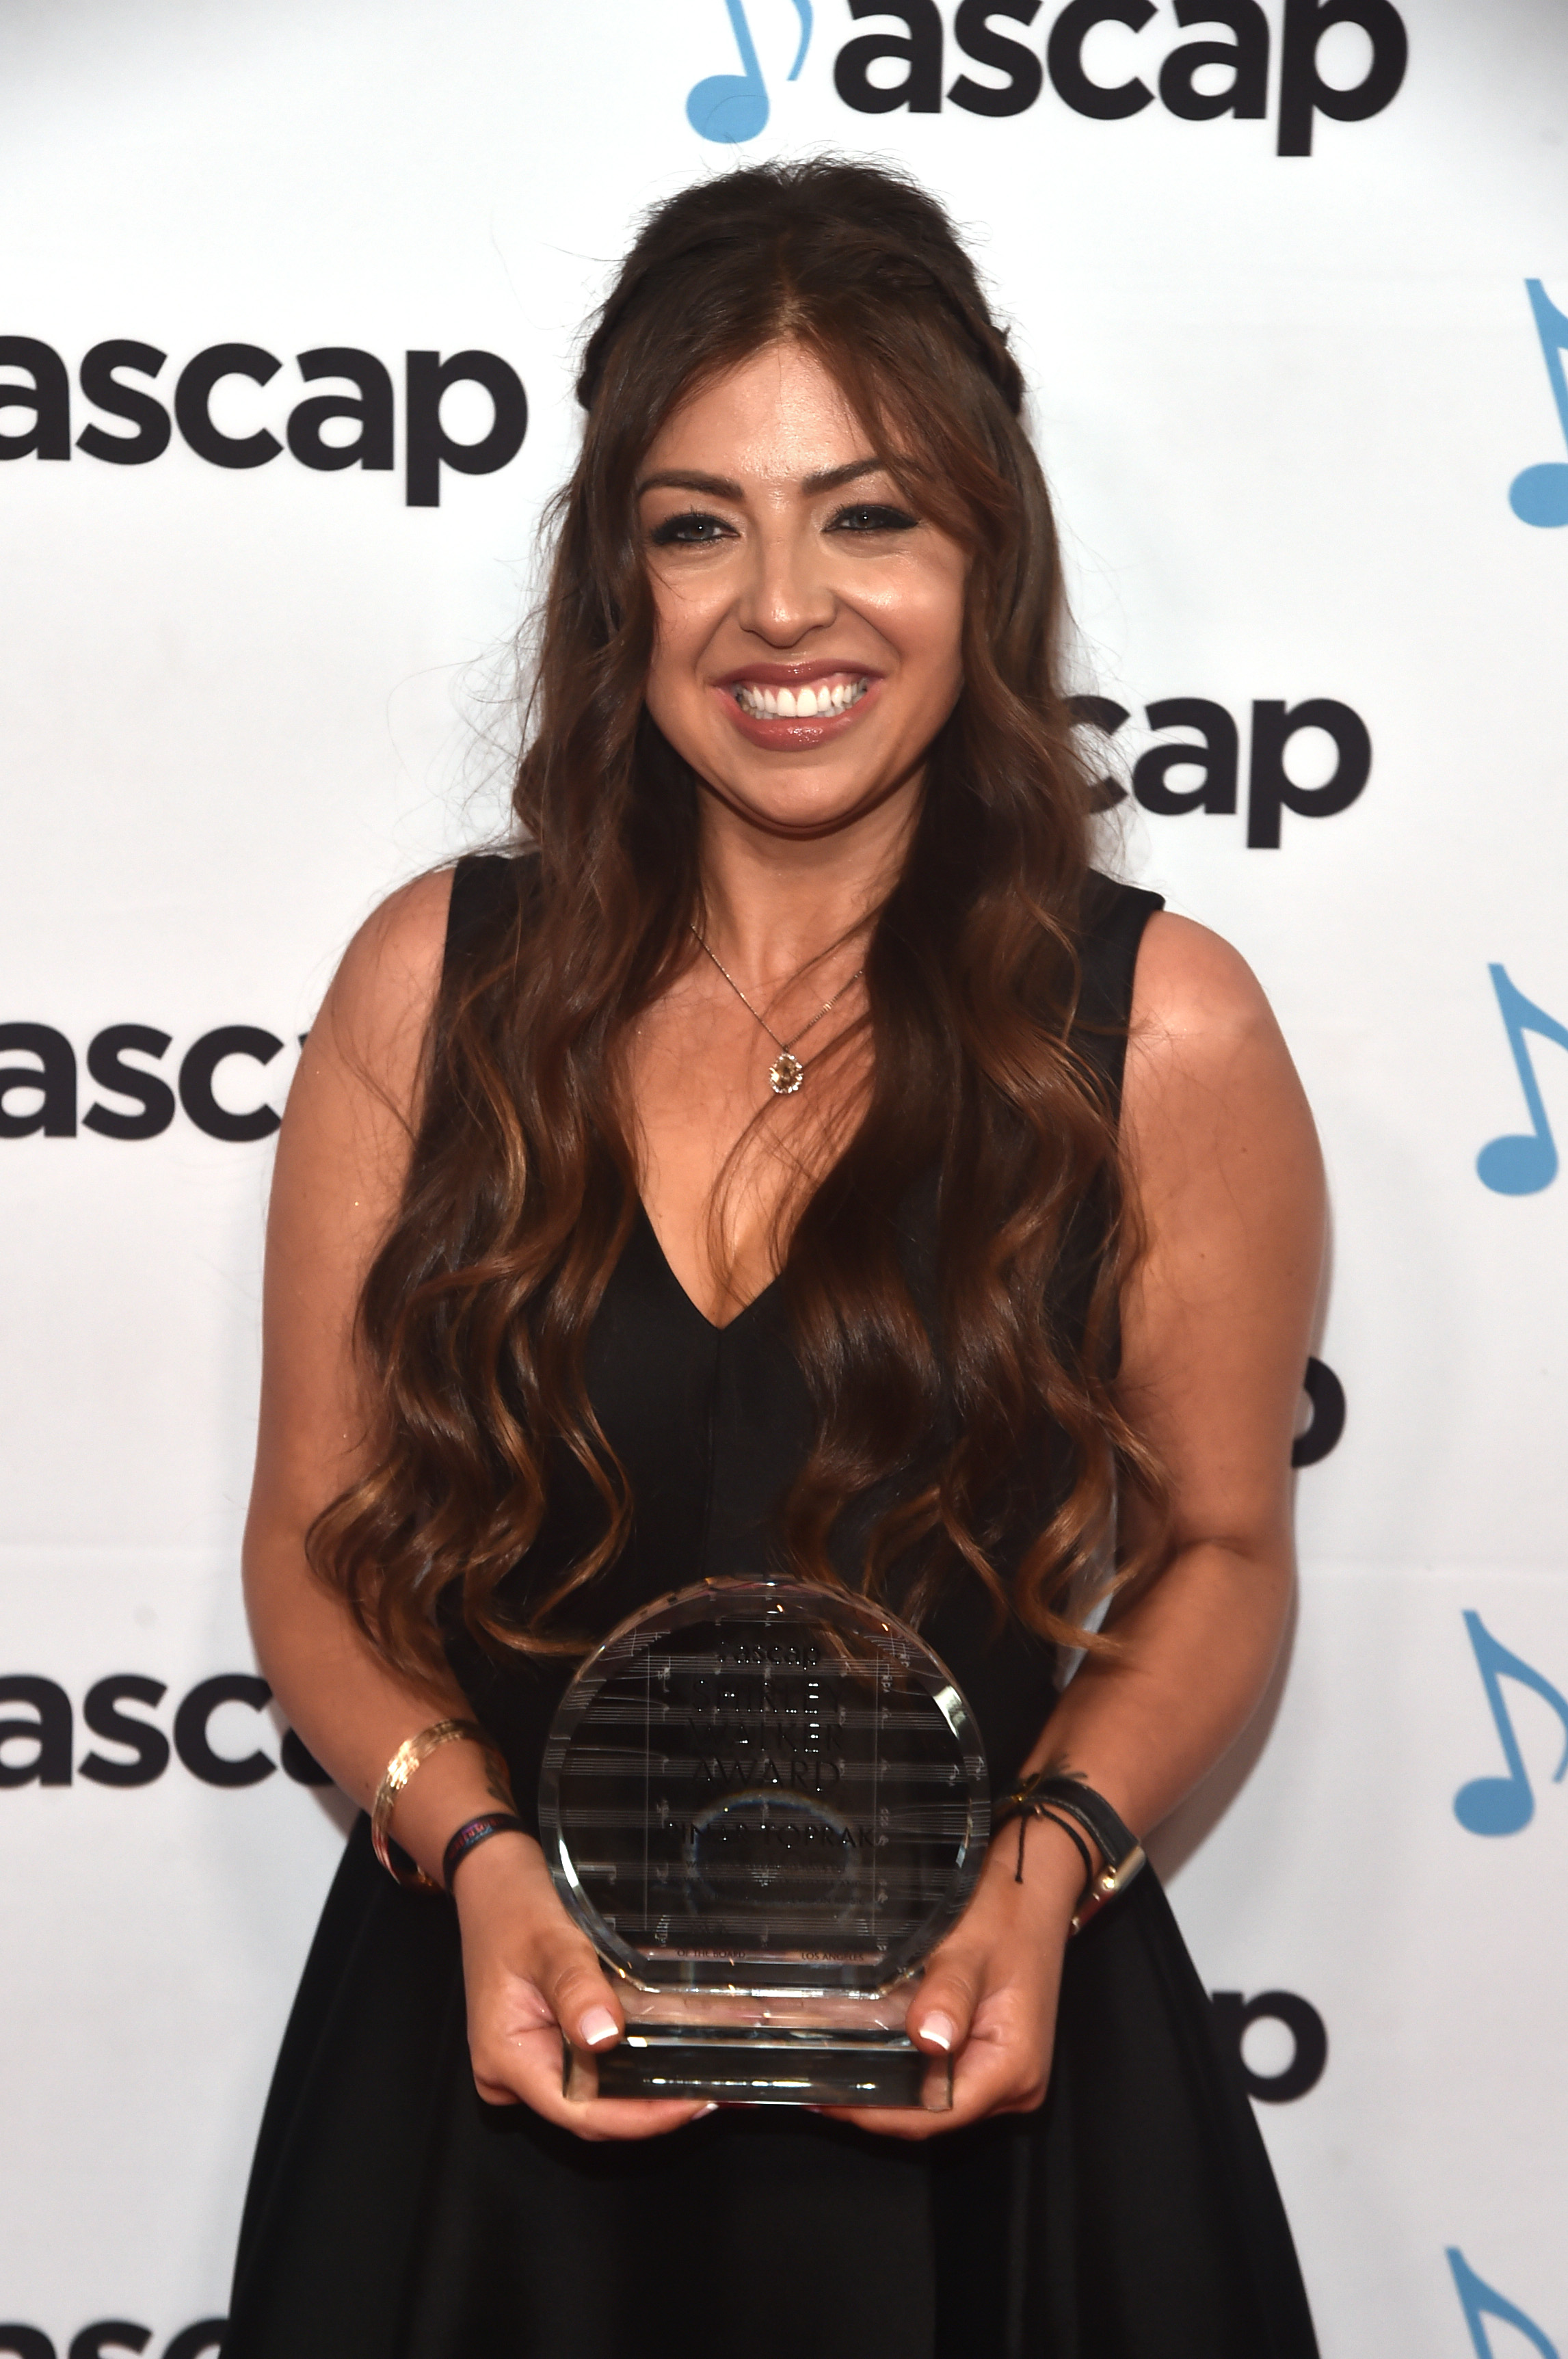 BEVERLY HILLS, CALIFORNIA - MAY 15: Composer Pinar Toprak, winner of the ASCAP Shirley Walker award attends the ASCAP 2019 Screen Music Awards at The Beverly Hilton Hotel on May 15, 2019 in Beverly Hills, California. (Photo by Alberto E. Rodriguez/Getty Images for ASCAP)